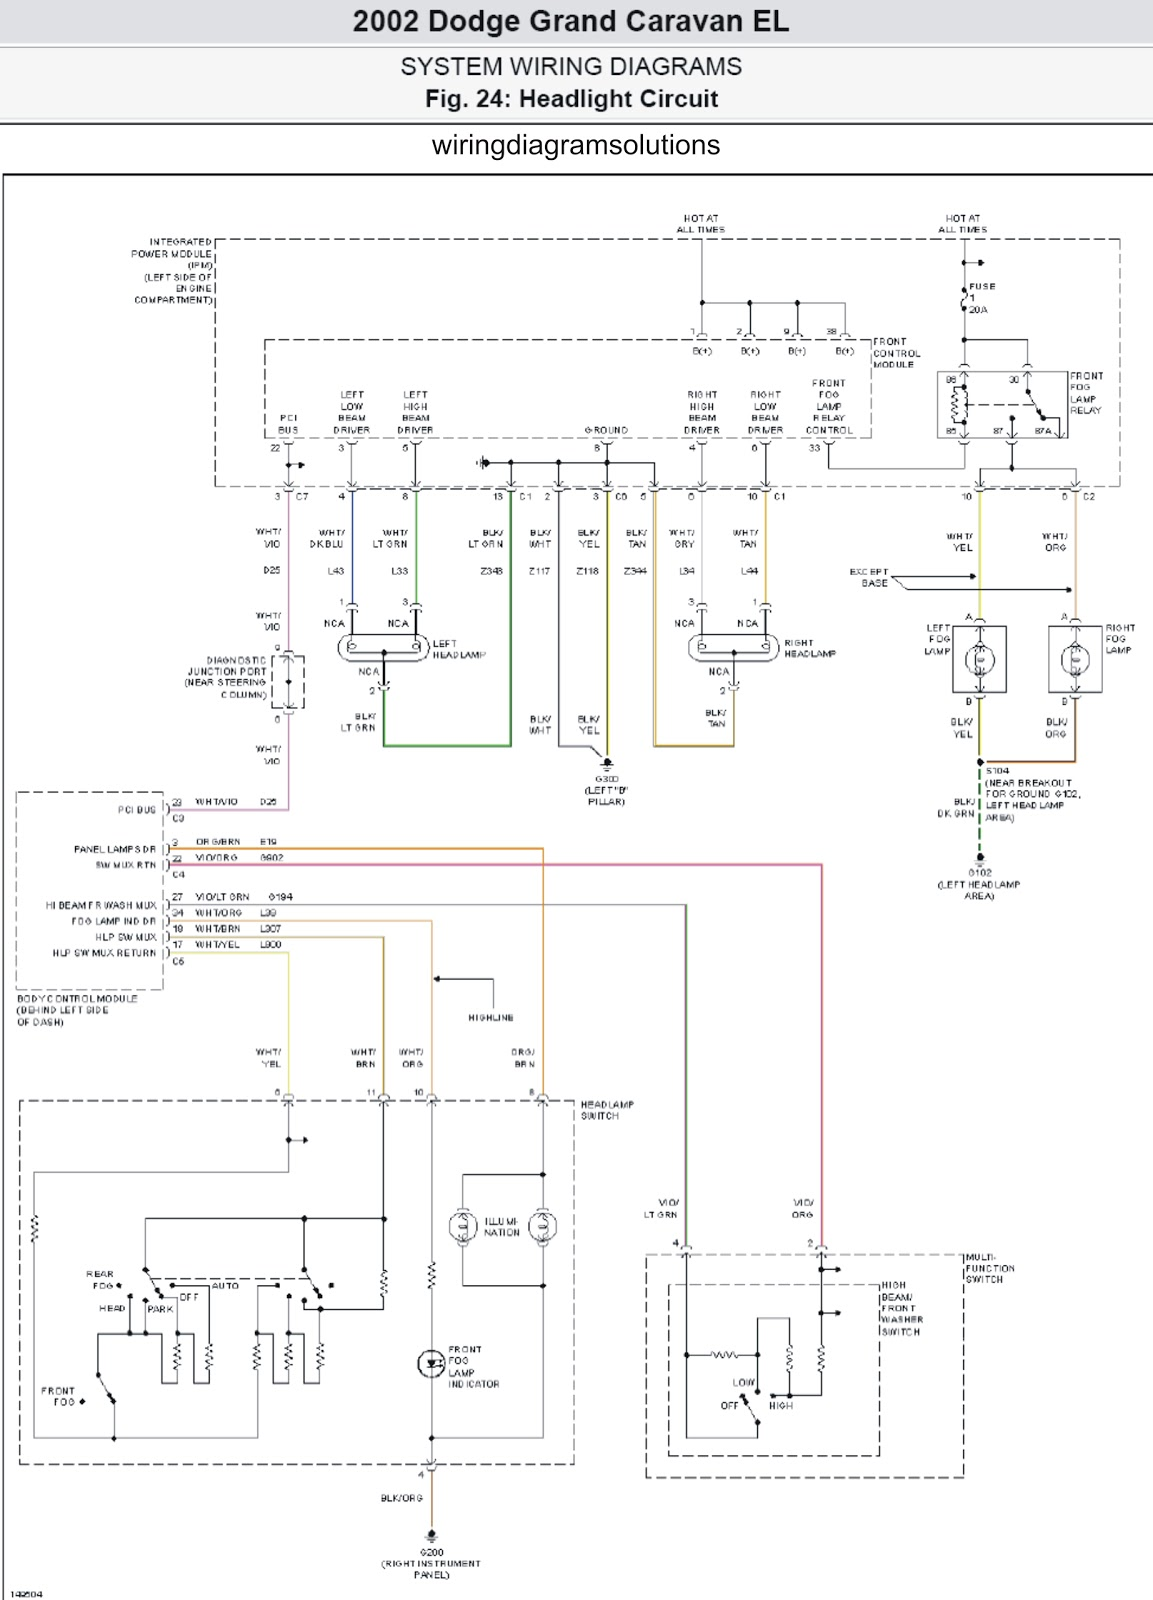 2002+dodge+caravan+Headlight+Circuit 2006 dodge caravan wiring diagram 2006 dodge caravan air  at honlapkeszites.co